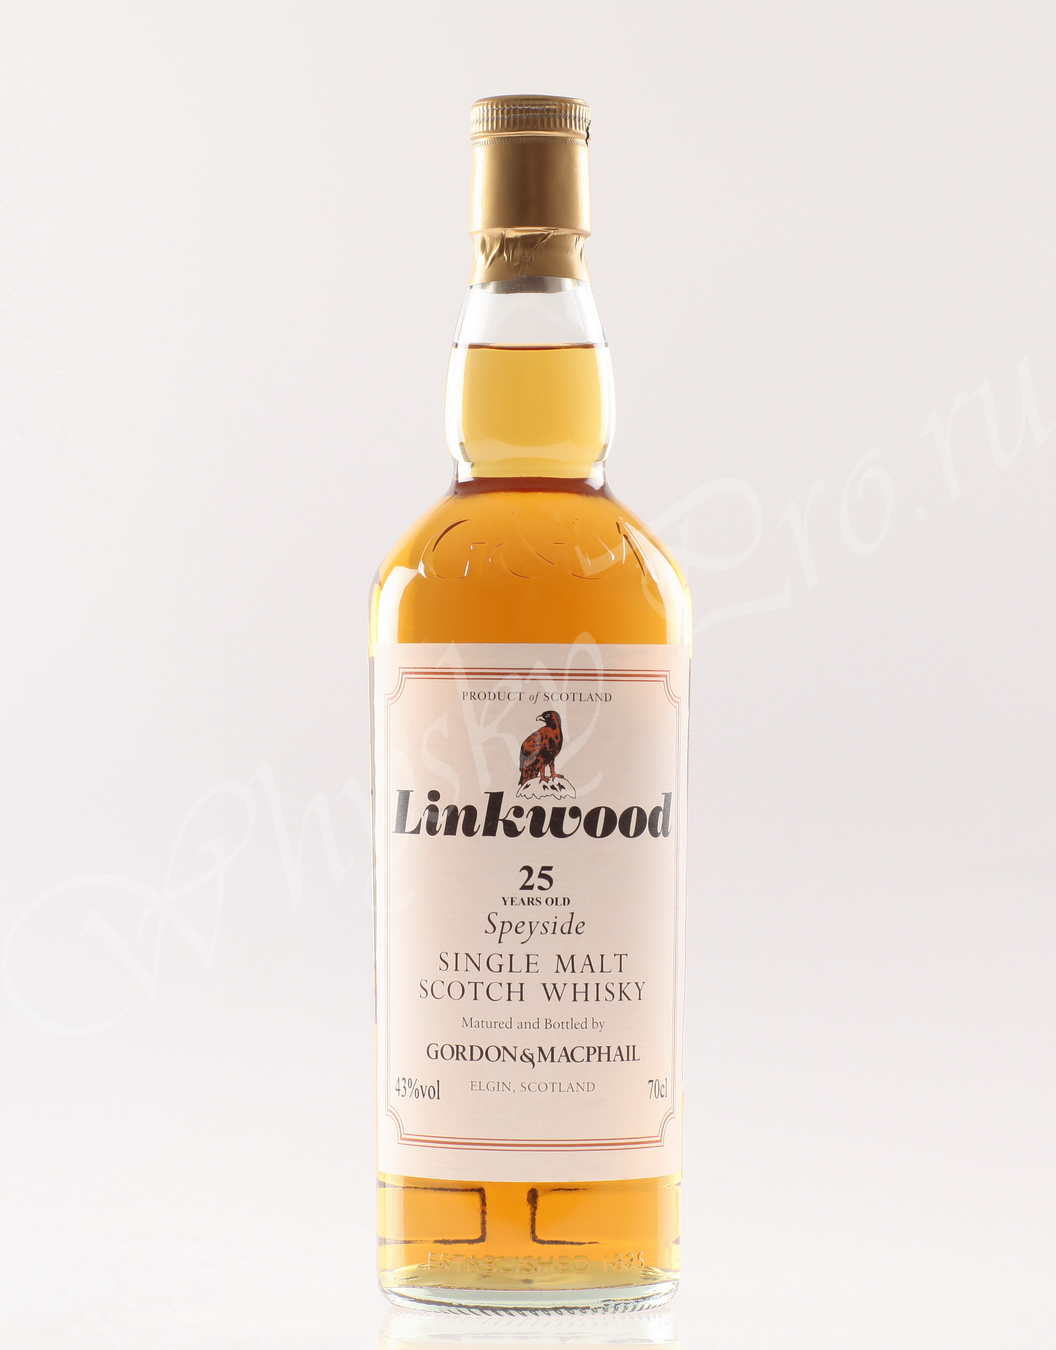 Linkwood 25 years / Gordon & Macphail